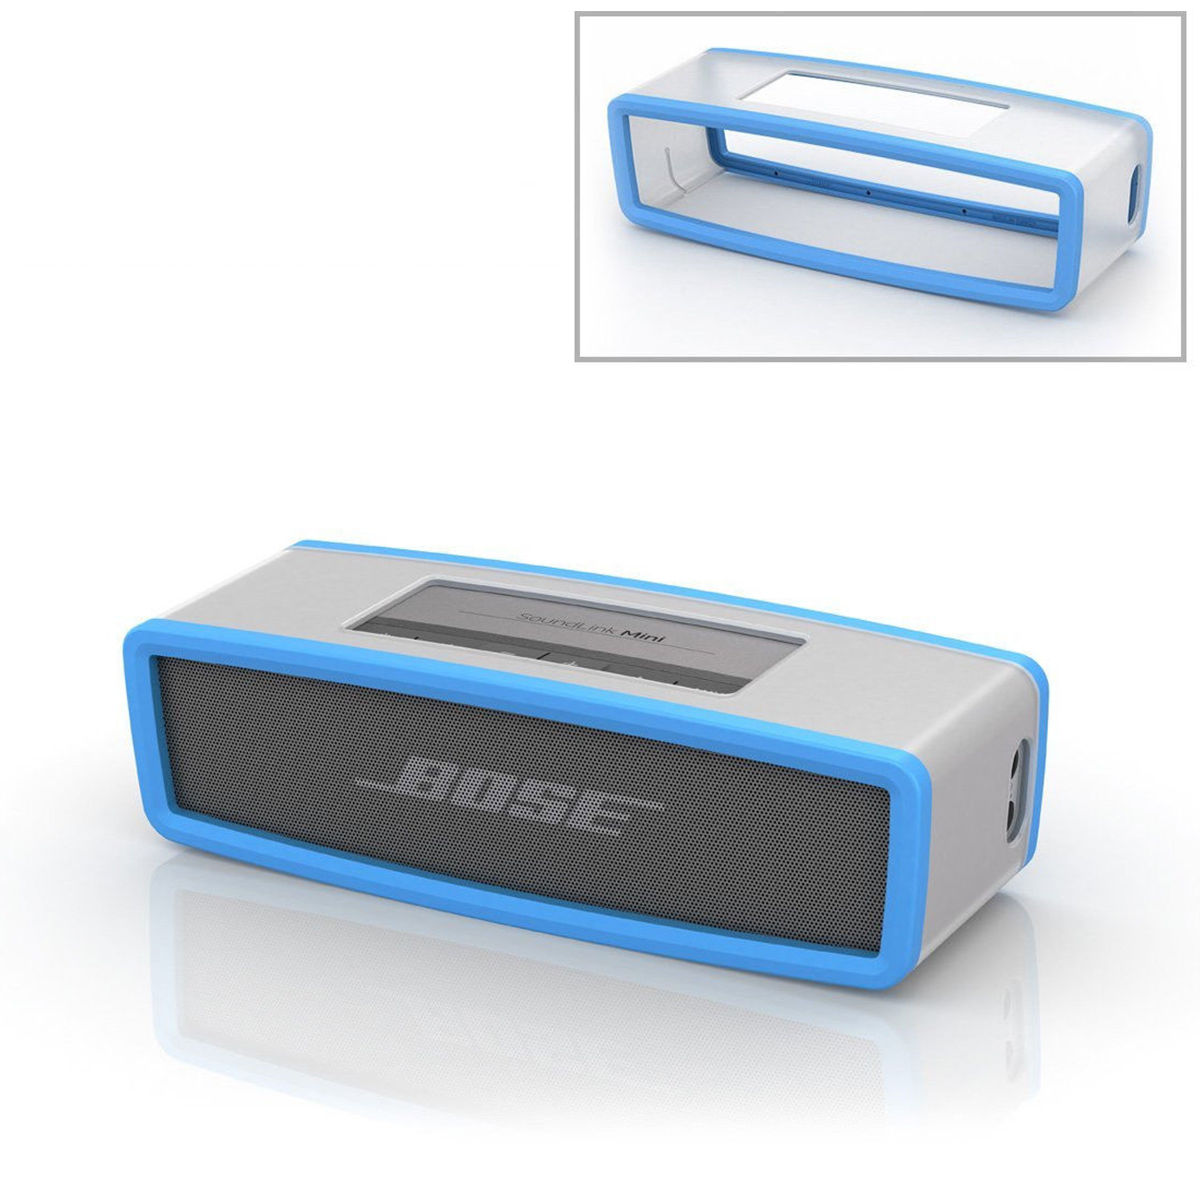 Huelle-Gehaeuse-Tasche-Schutz-Case-fuer-Bose-Soundlink-Mini-1-2-Bluetooth-Speaker